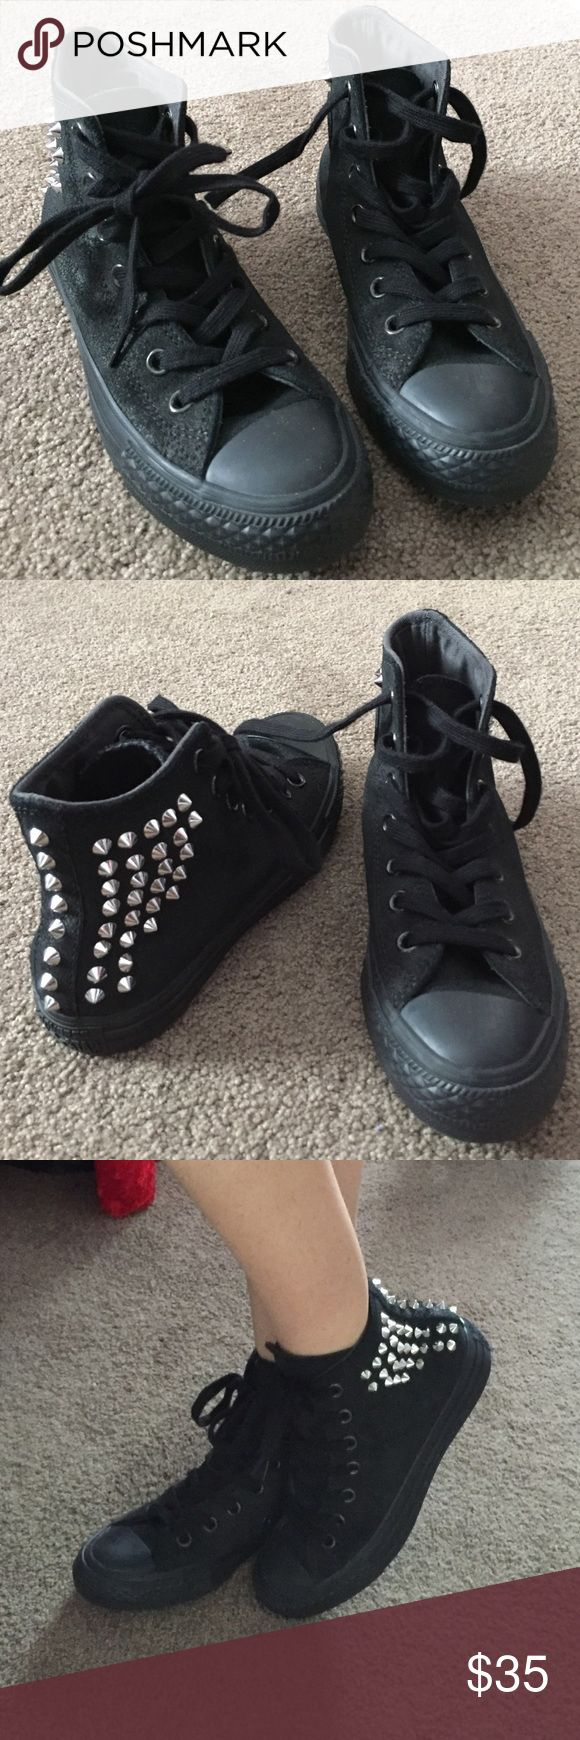 Black spiked suede converse high tops Take a look at these badass pair of black suede converse shoes. Looks great with skinny jeans. I like to go all black on black with these babies ✔️❤️. Only worn a few times! Thanks for looking! Converse Shoes Sneakers